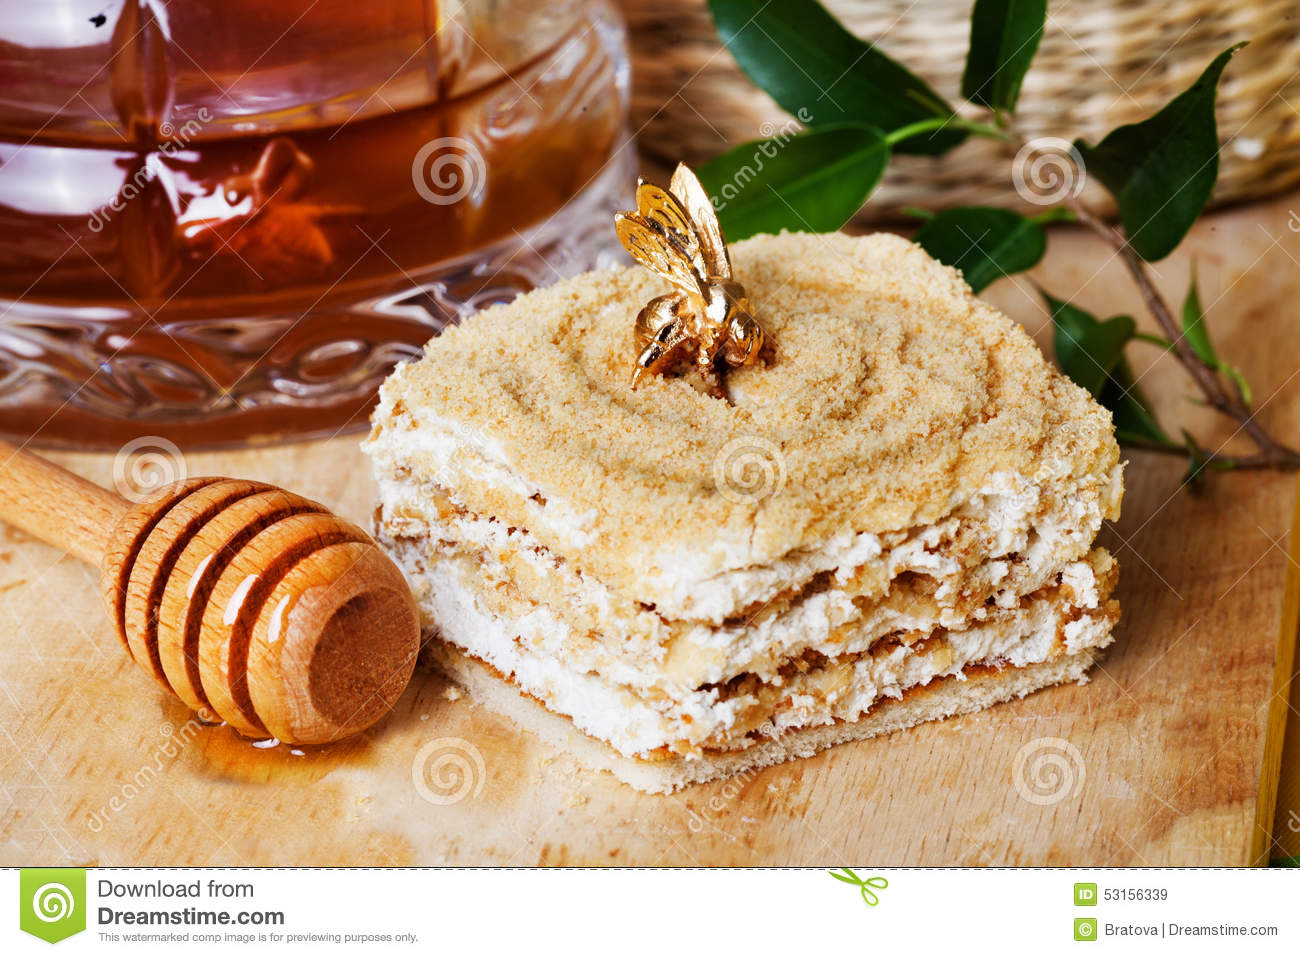 Clipart Of Honey Cake : Honey Cake And A Special Spoon In Still Life With Stock ...